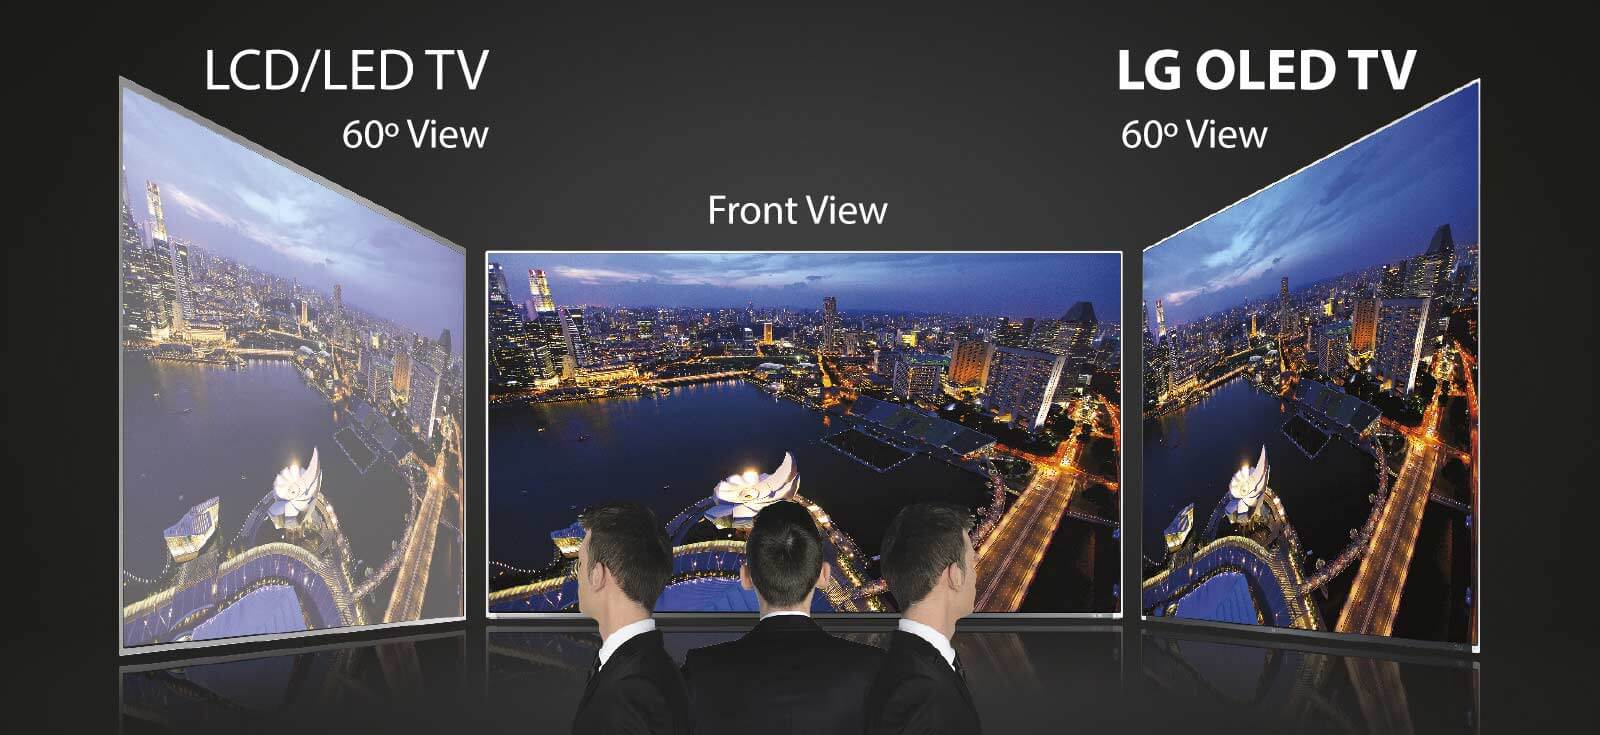 OLED offers the widest viewing angles when compared to LED